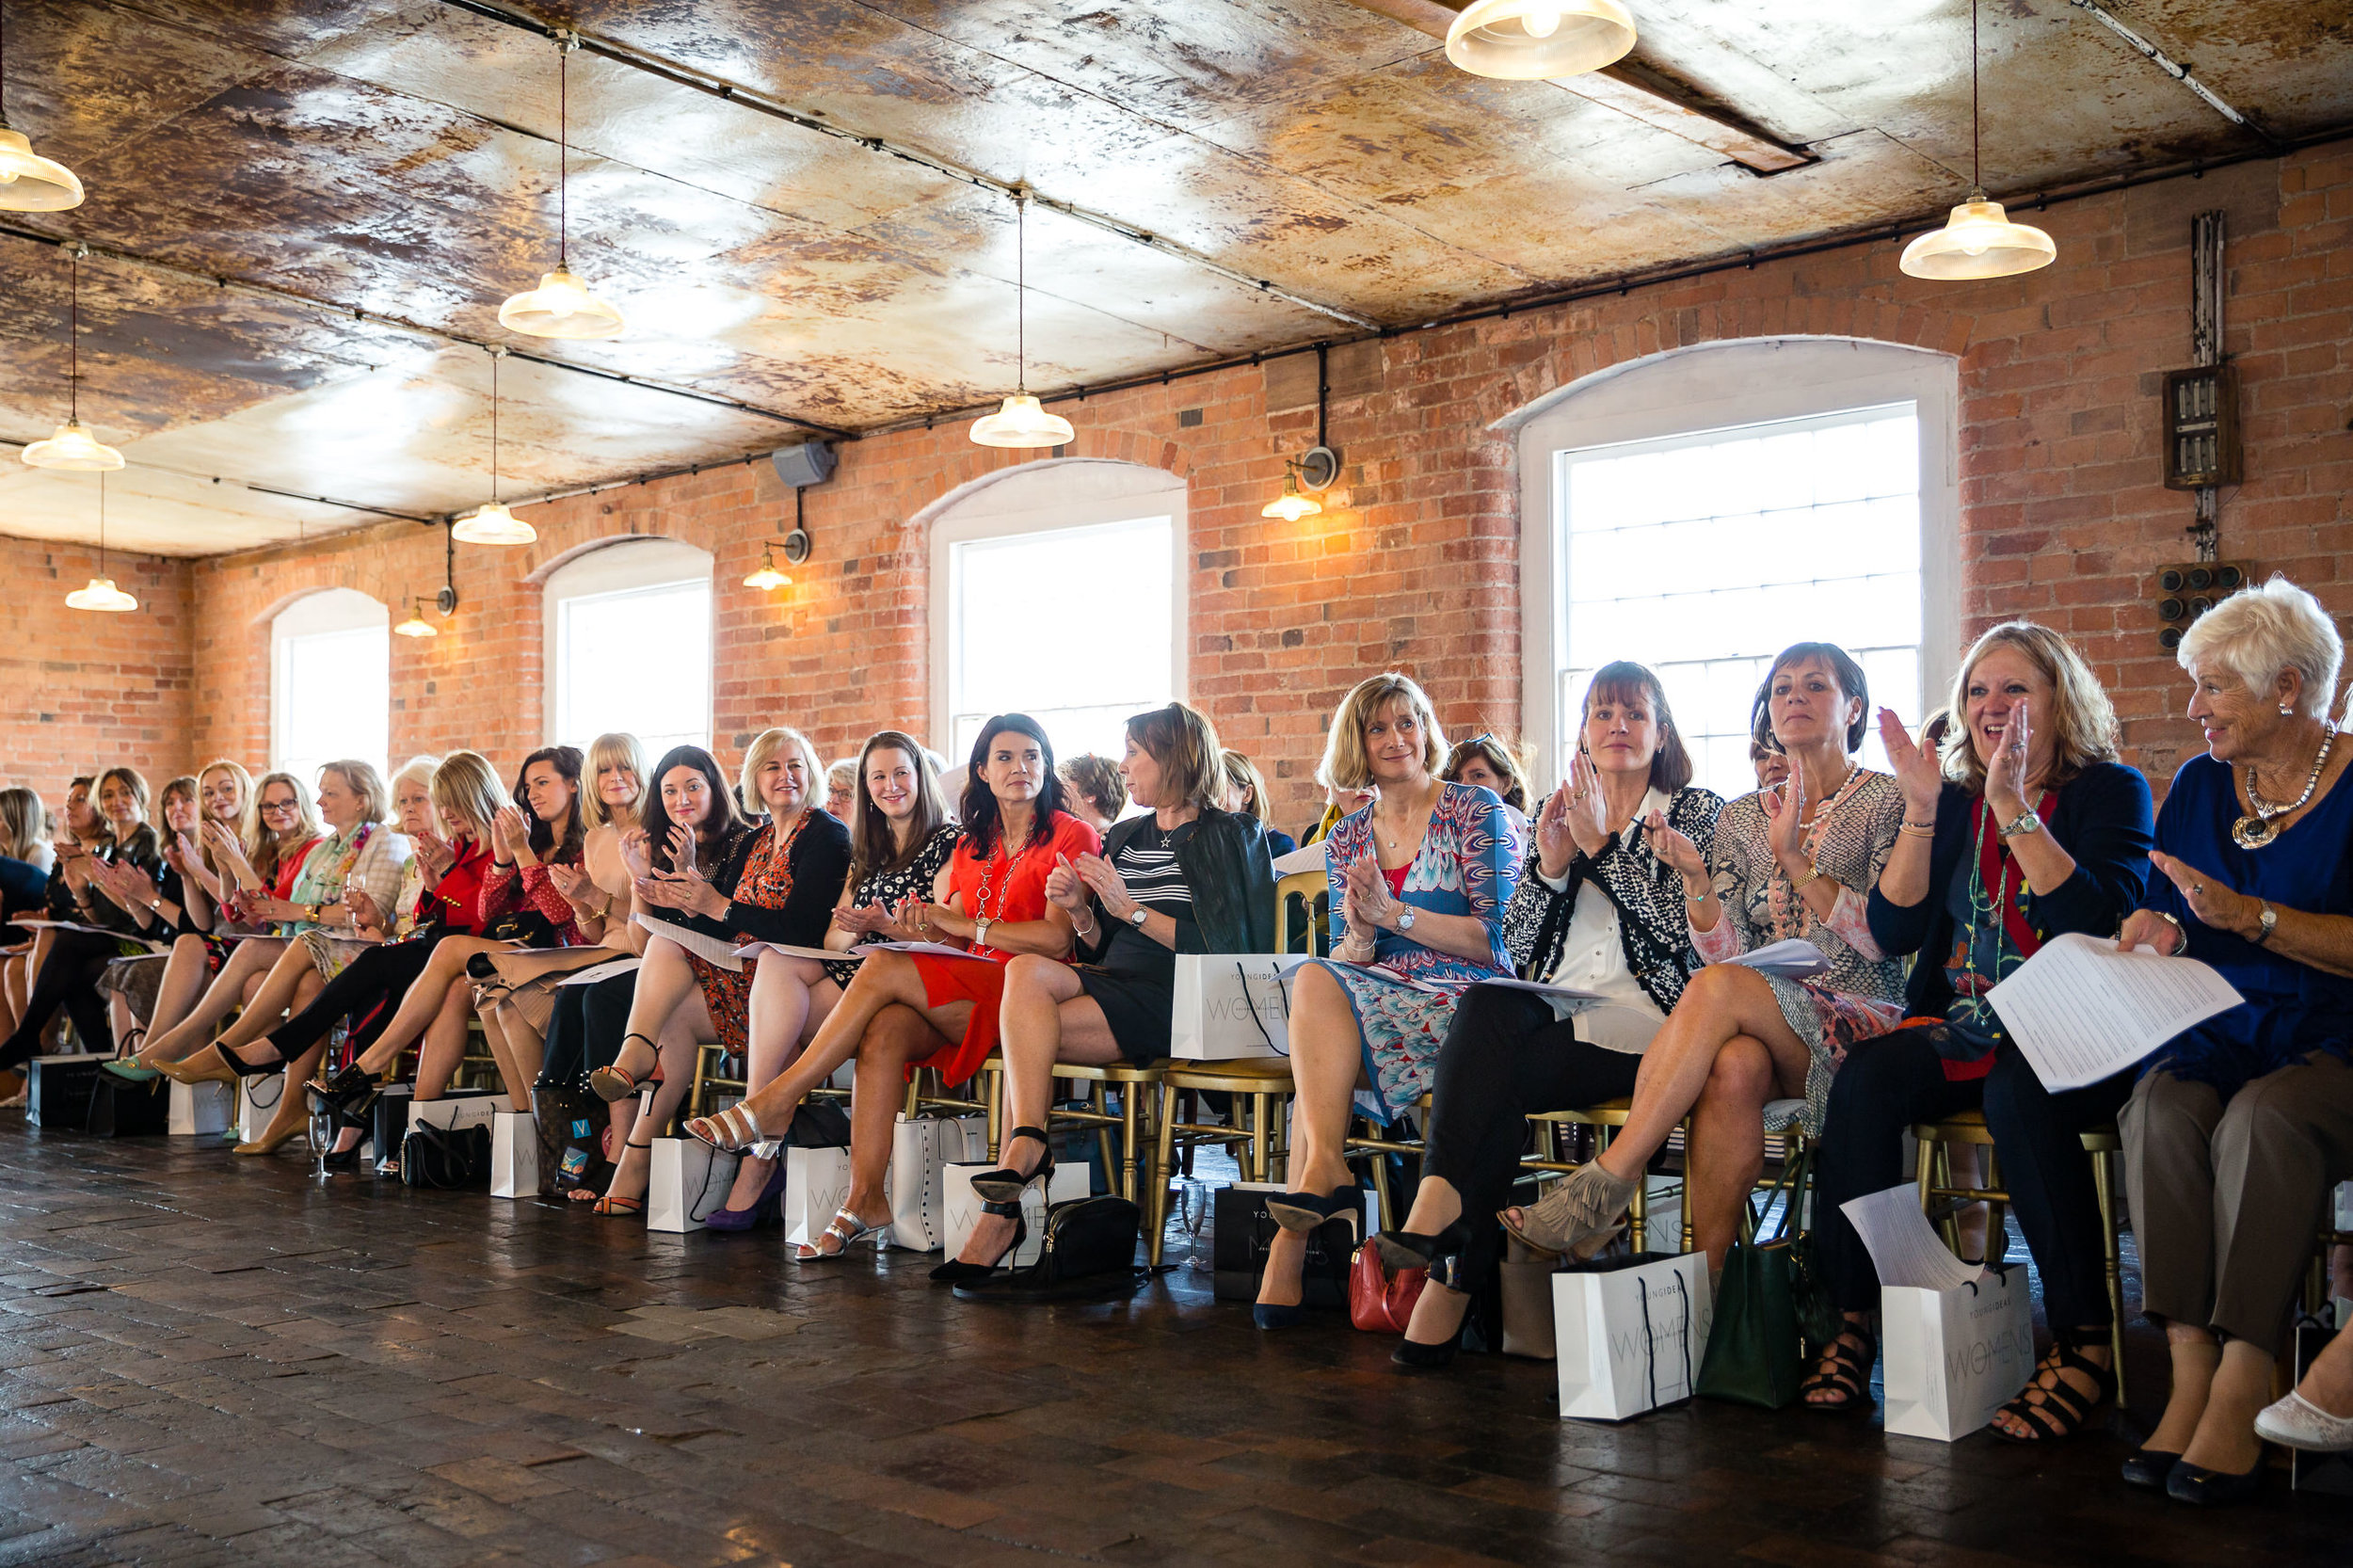 Designer-Fashion-Show-Clothing-Young-Ideas-West-Mill-Venue-Derby-Photography-Photographer-17.jpg